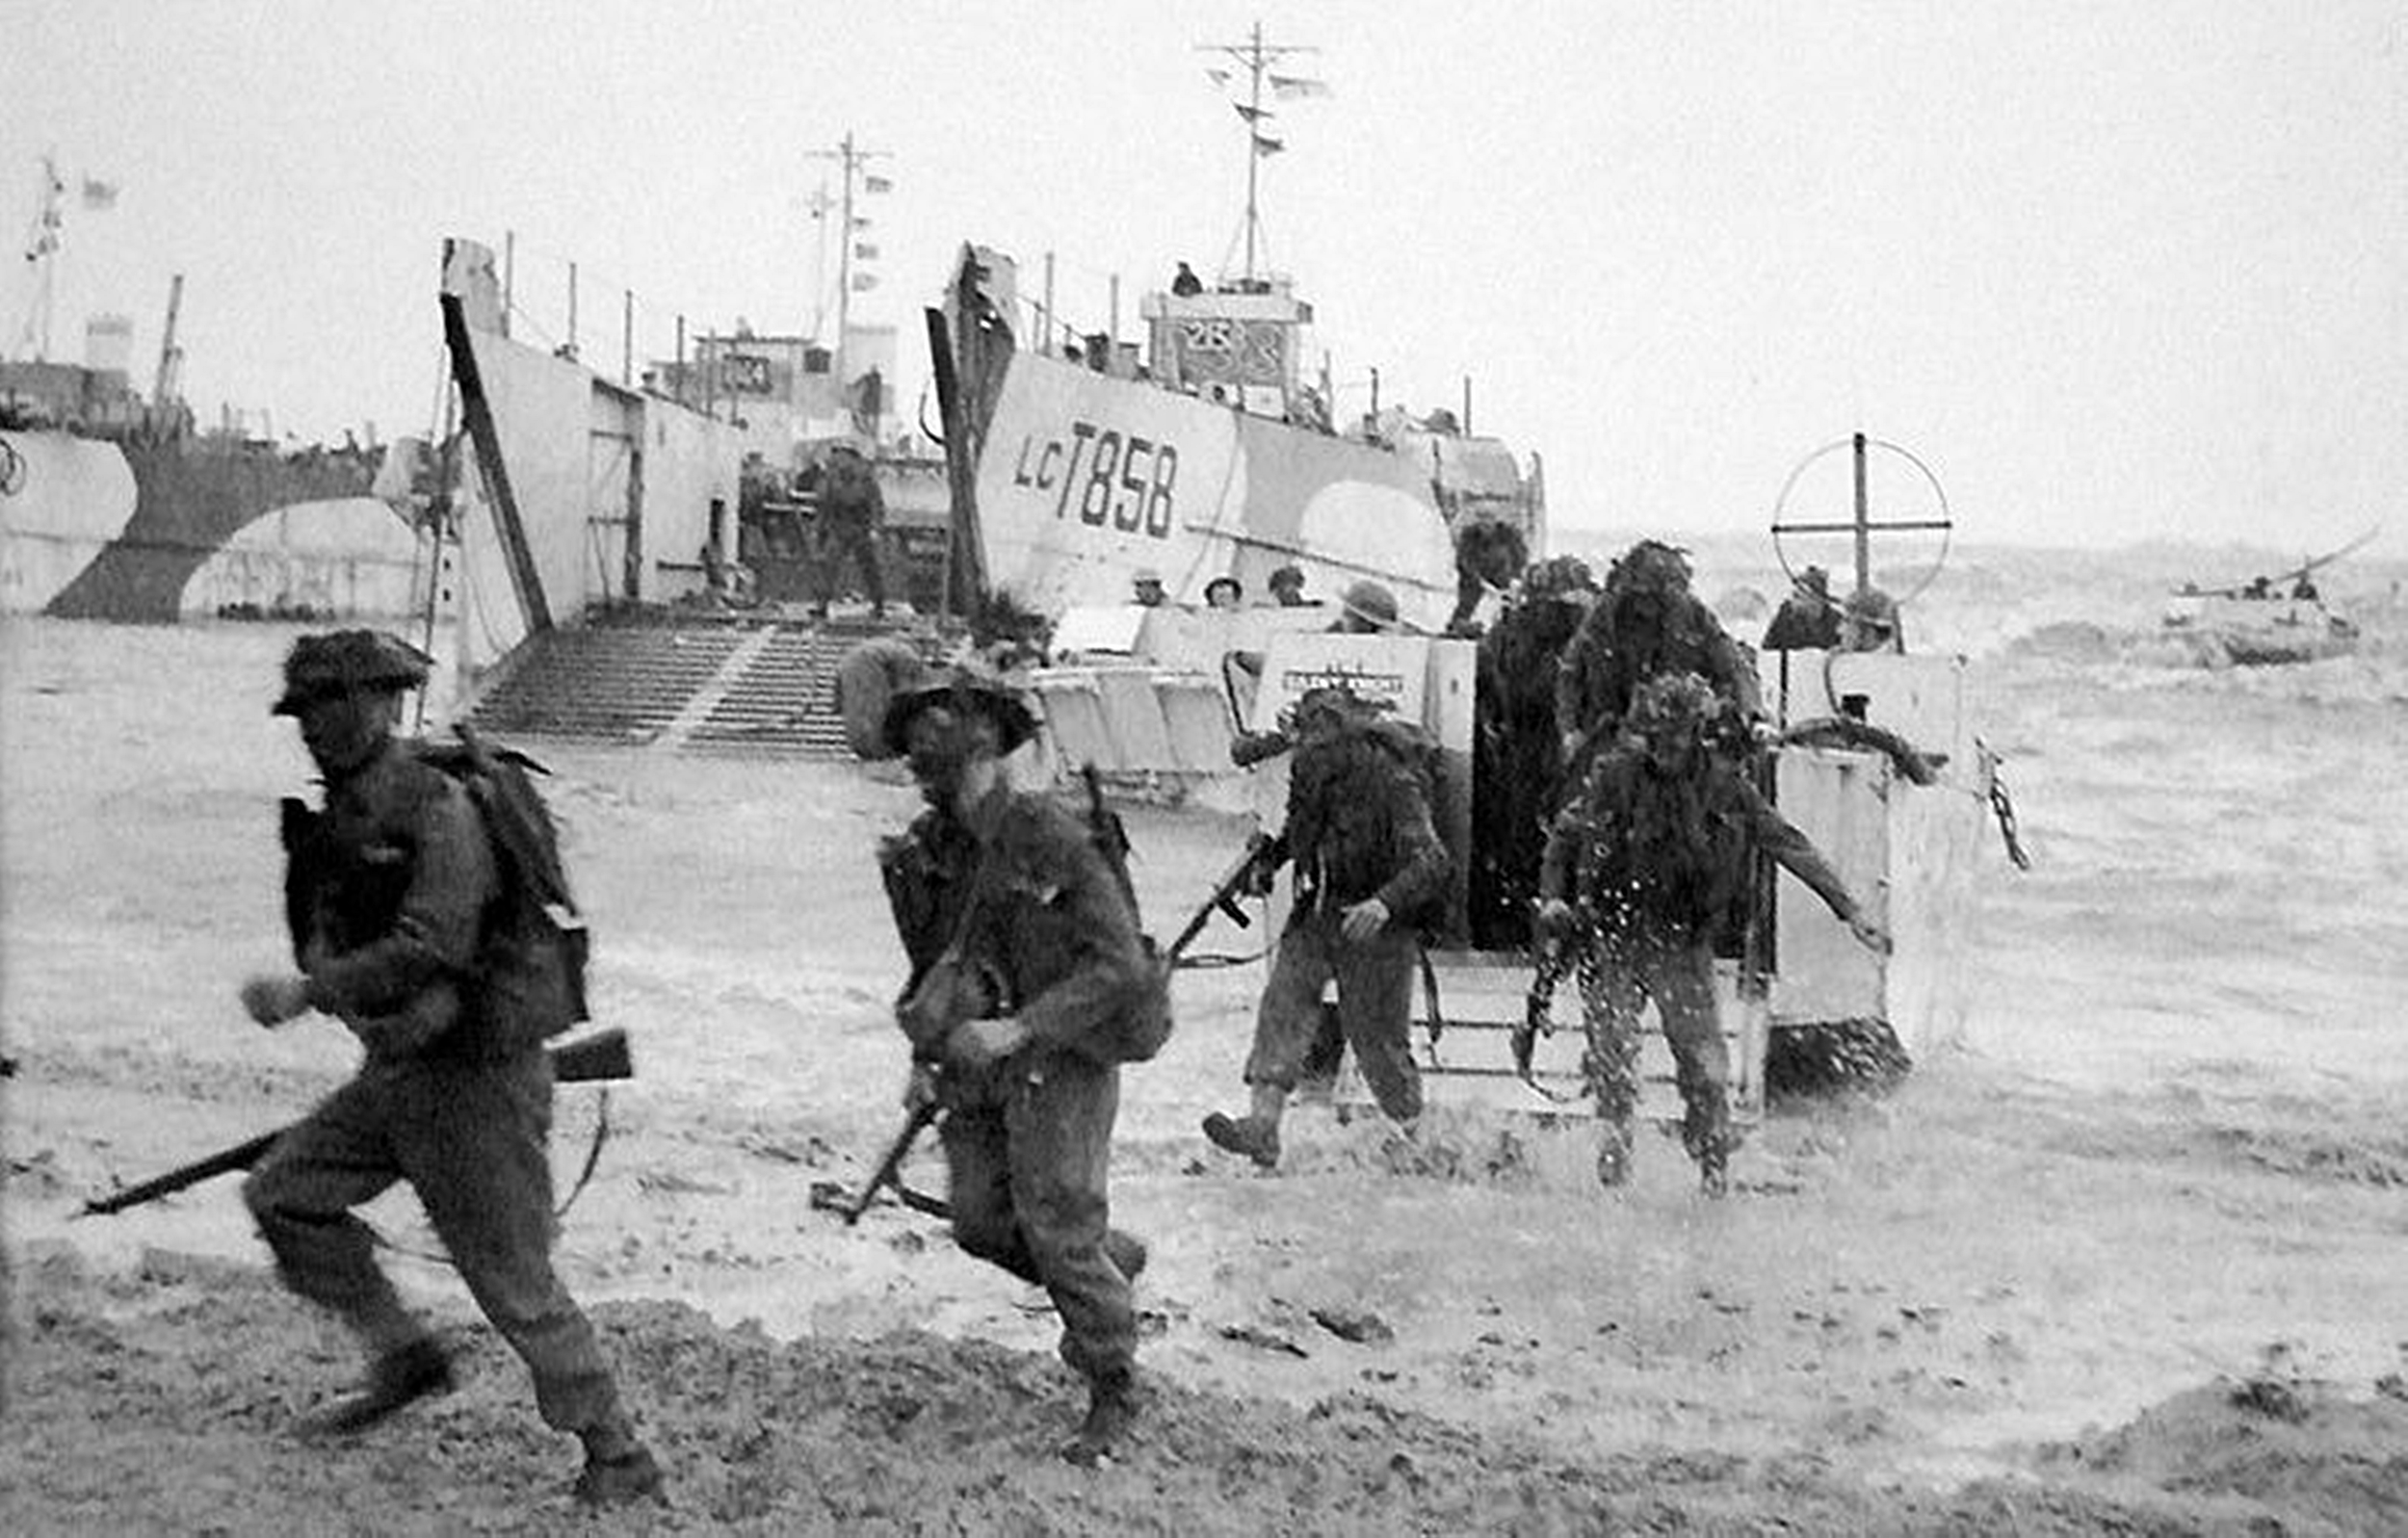 Gold Beach, D-Day, June 6 1944